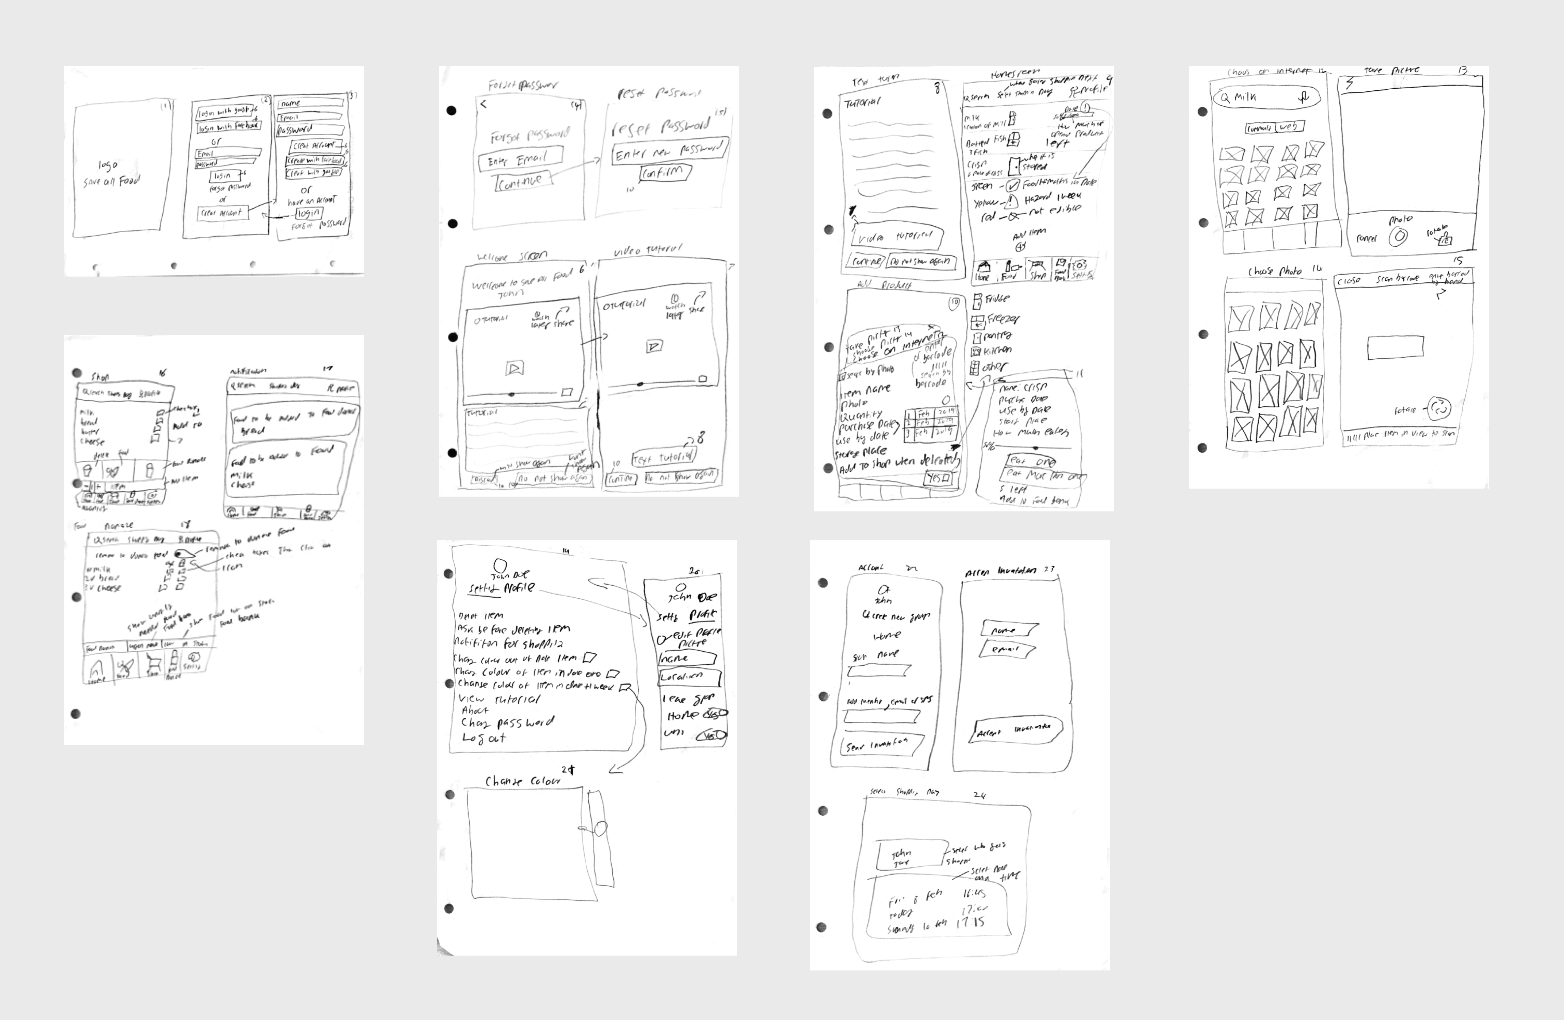 sketches of how app will work